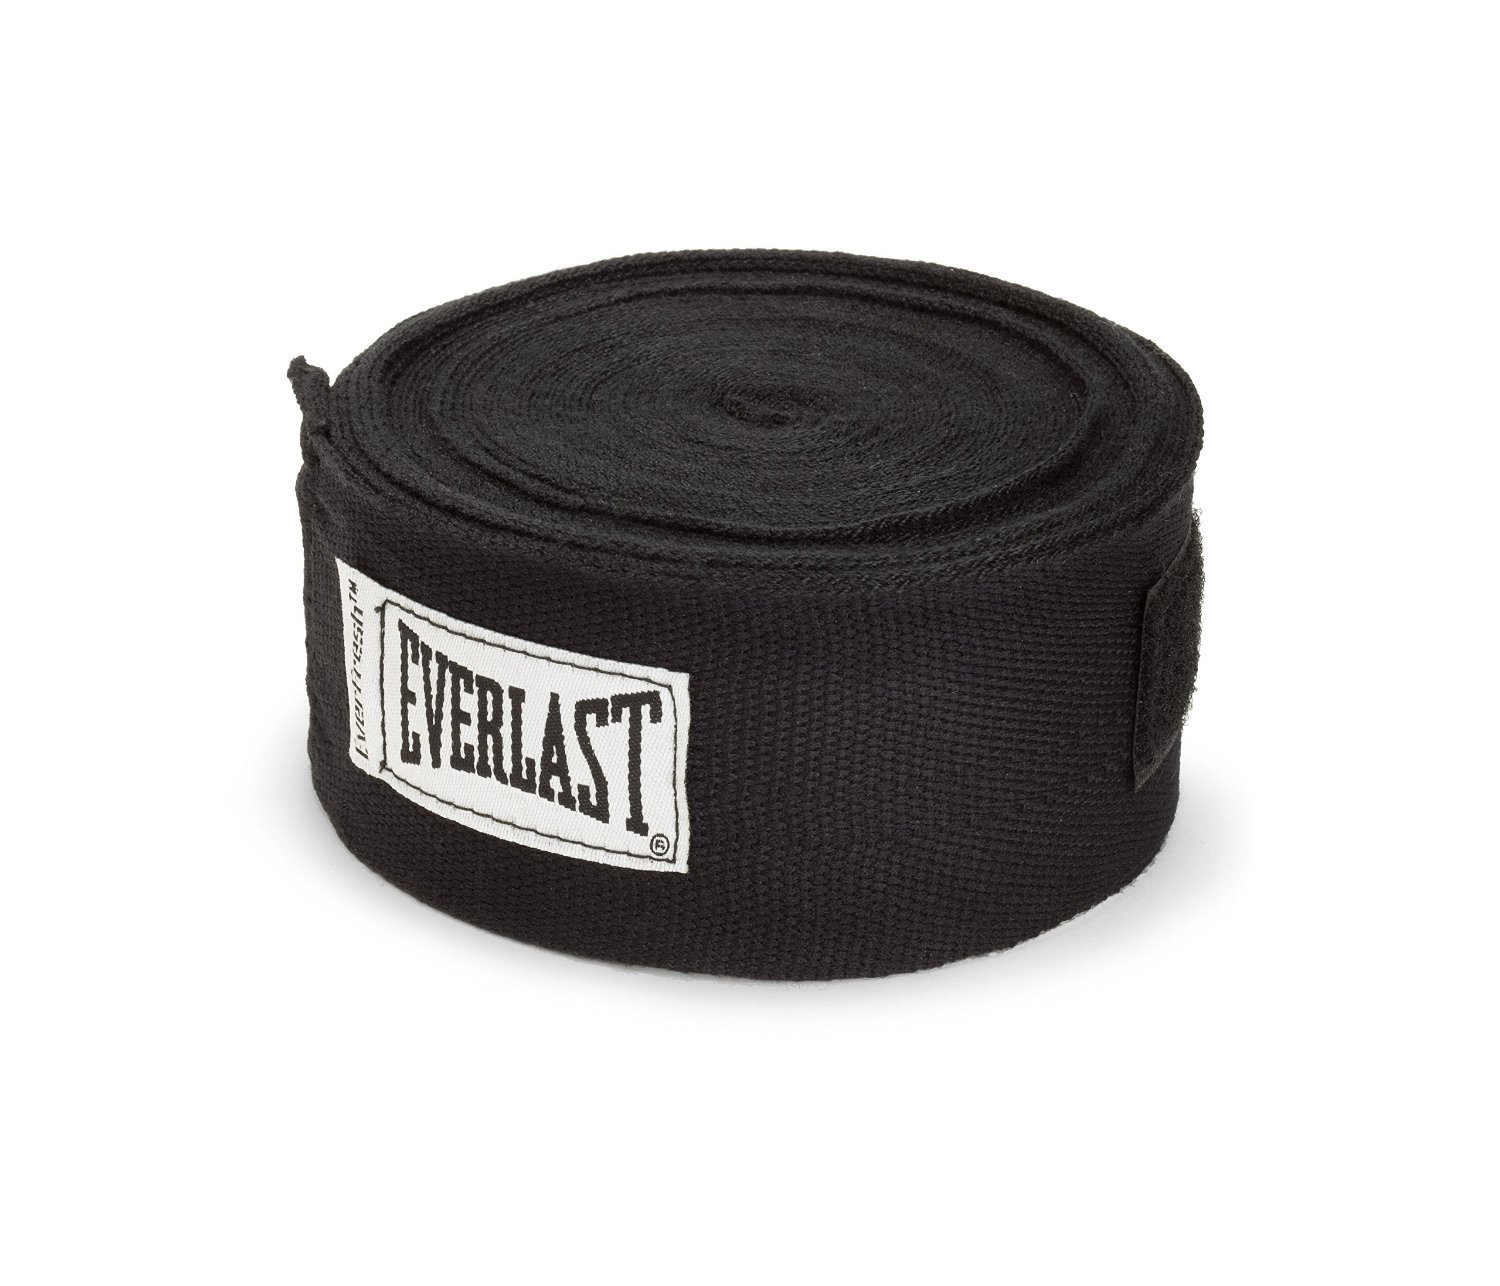 Best Boxing Hand Wraps - Everlast Pro